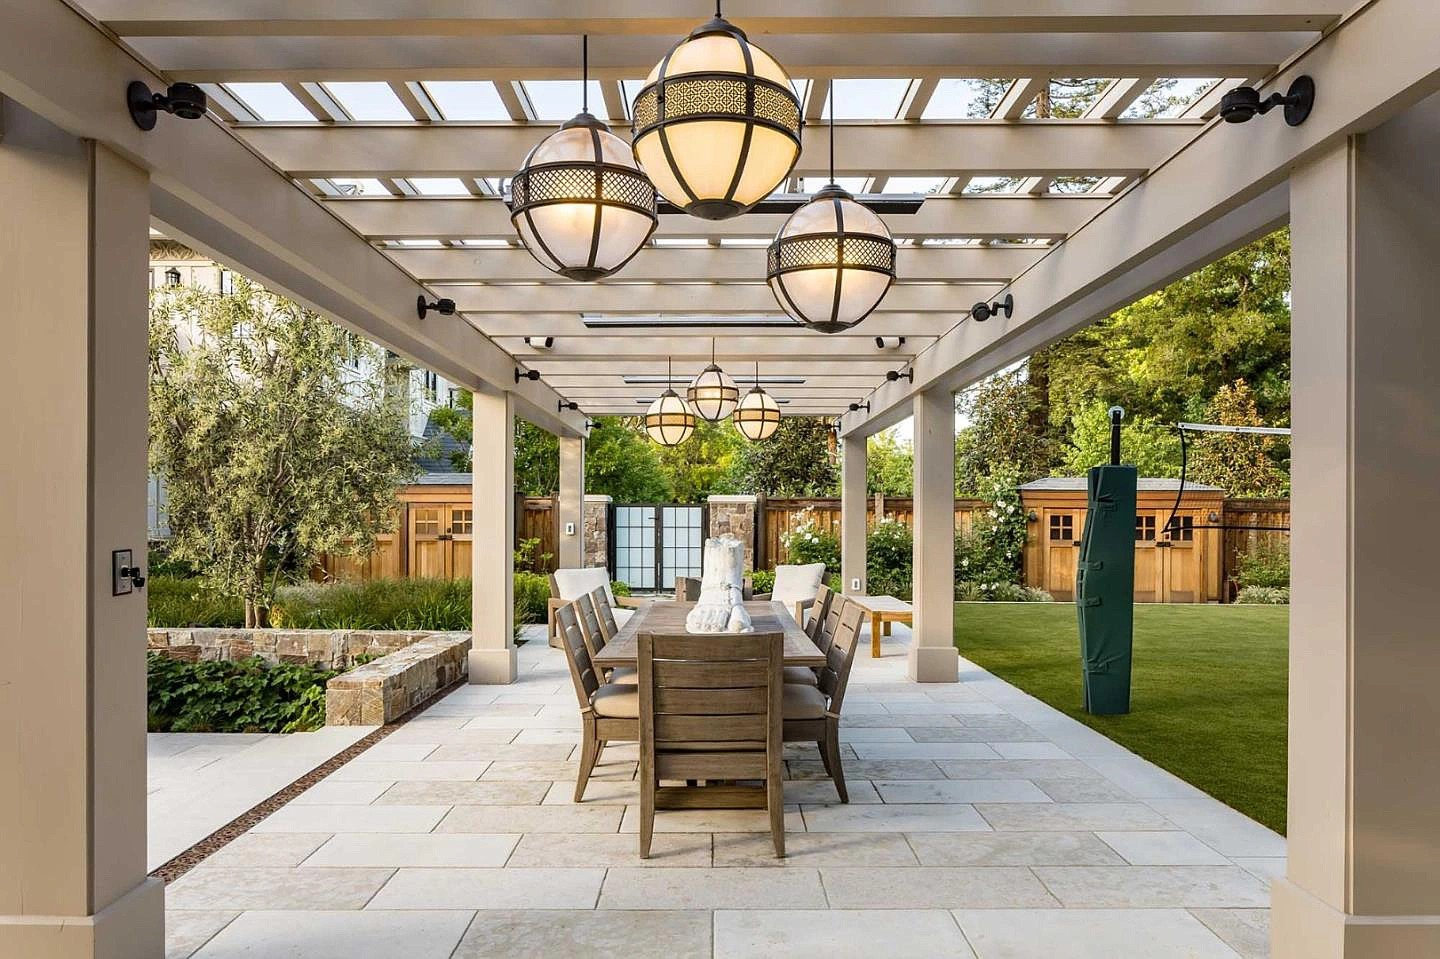 369 Churchill Ave, Palo Alto, CA 94301 - $39,988,000 home for sale, house images, photos and pics gallery